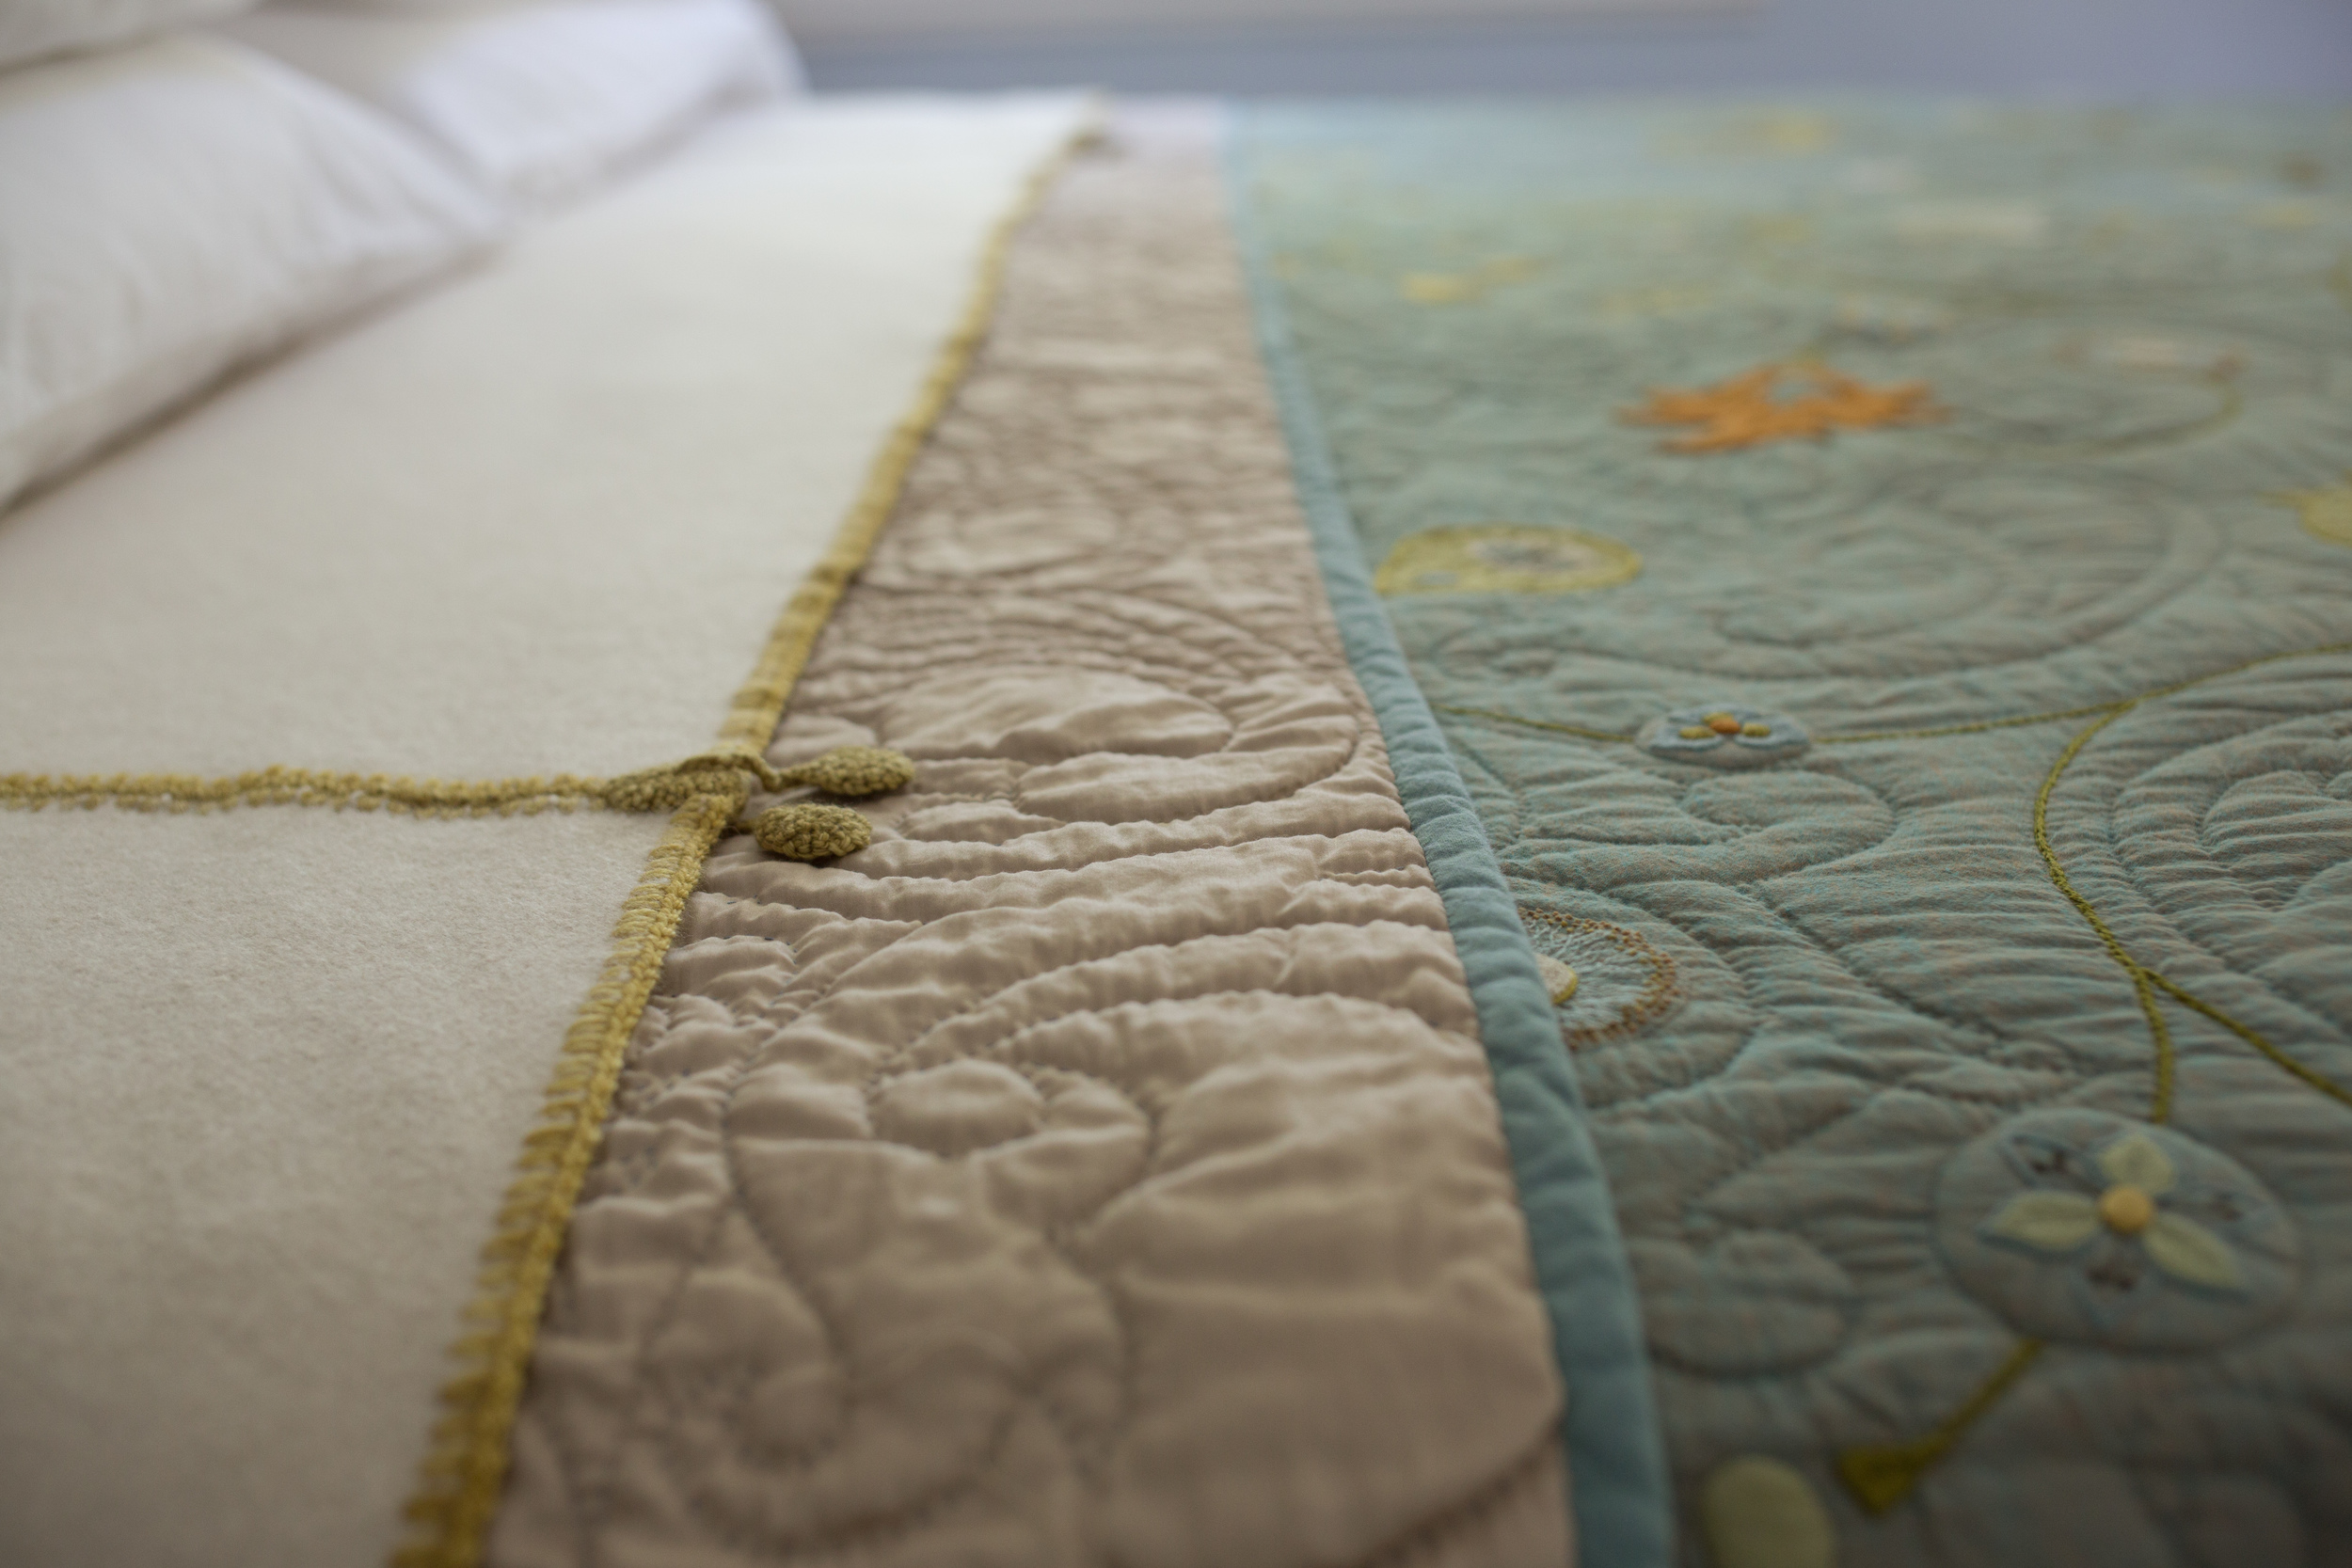 View of the entwine quilt and its accompanying cashmere blanket with hand crochet border